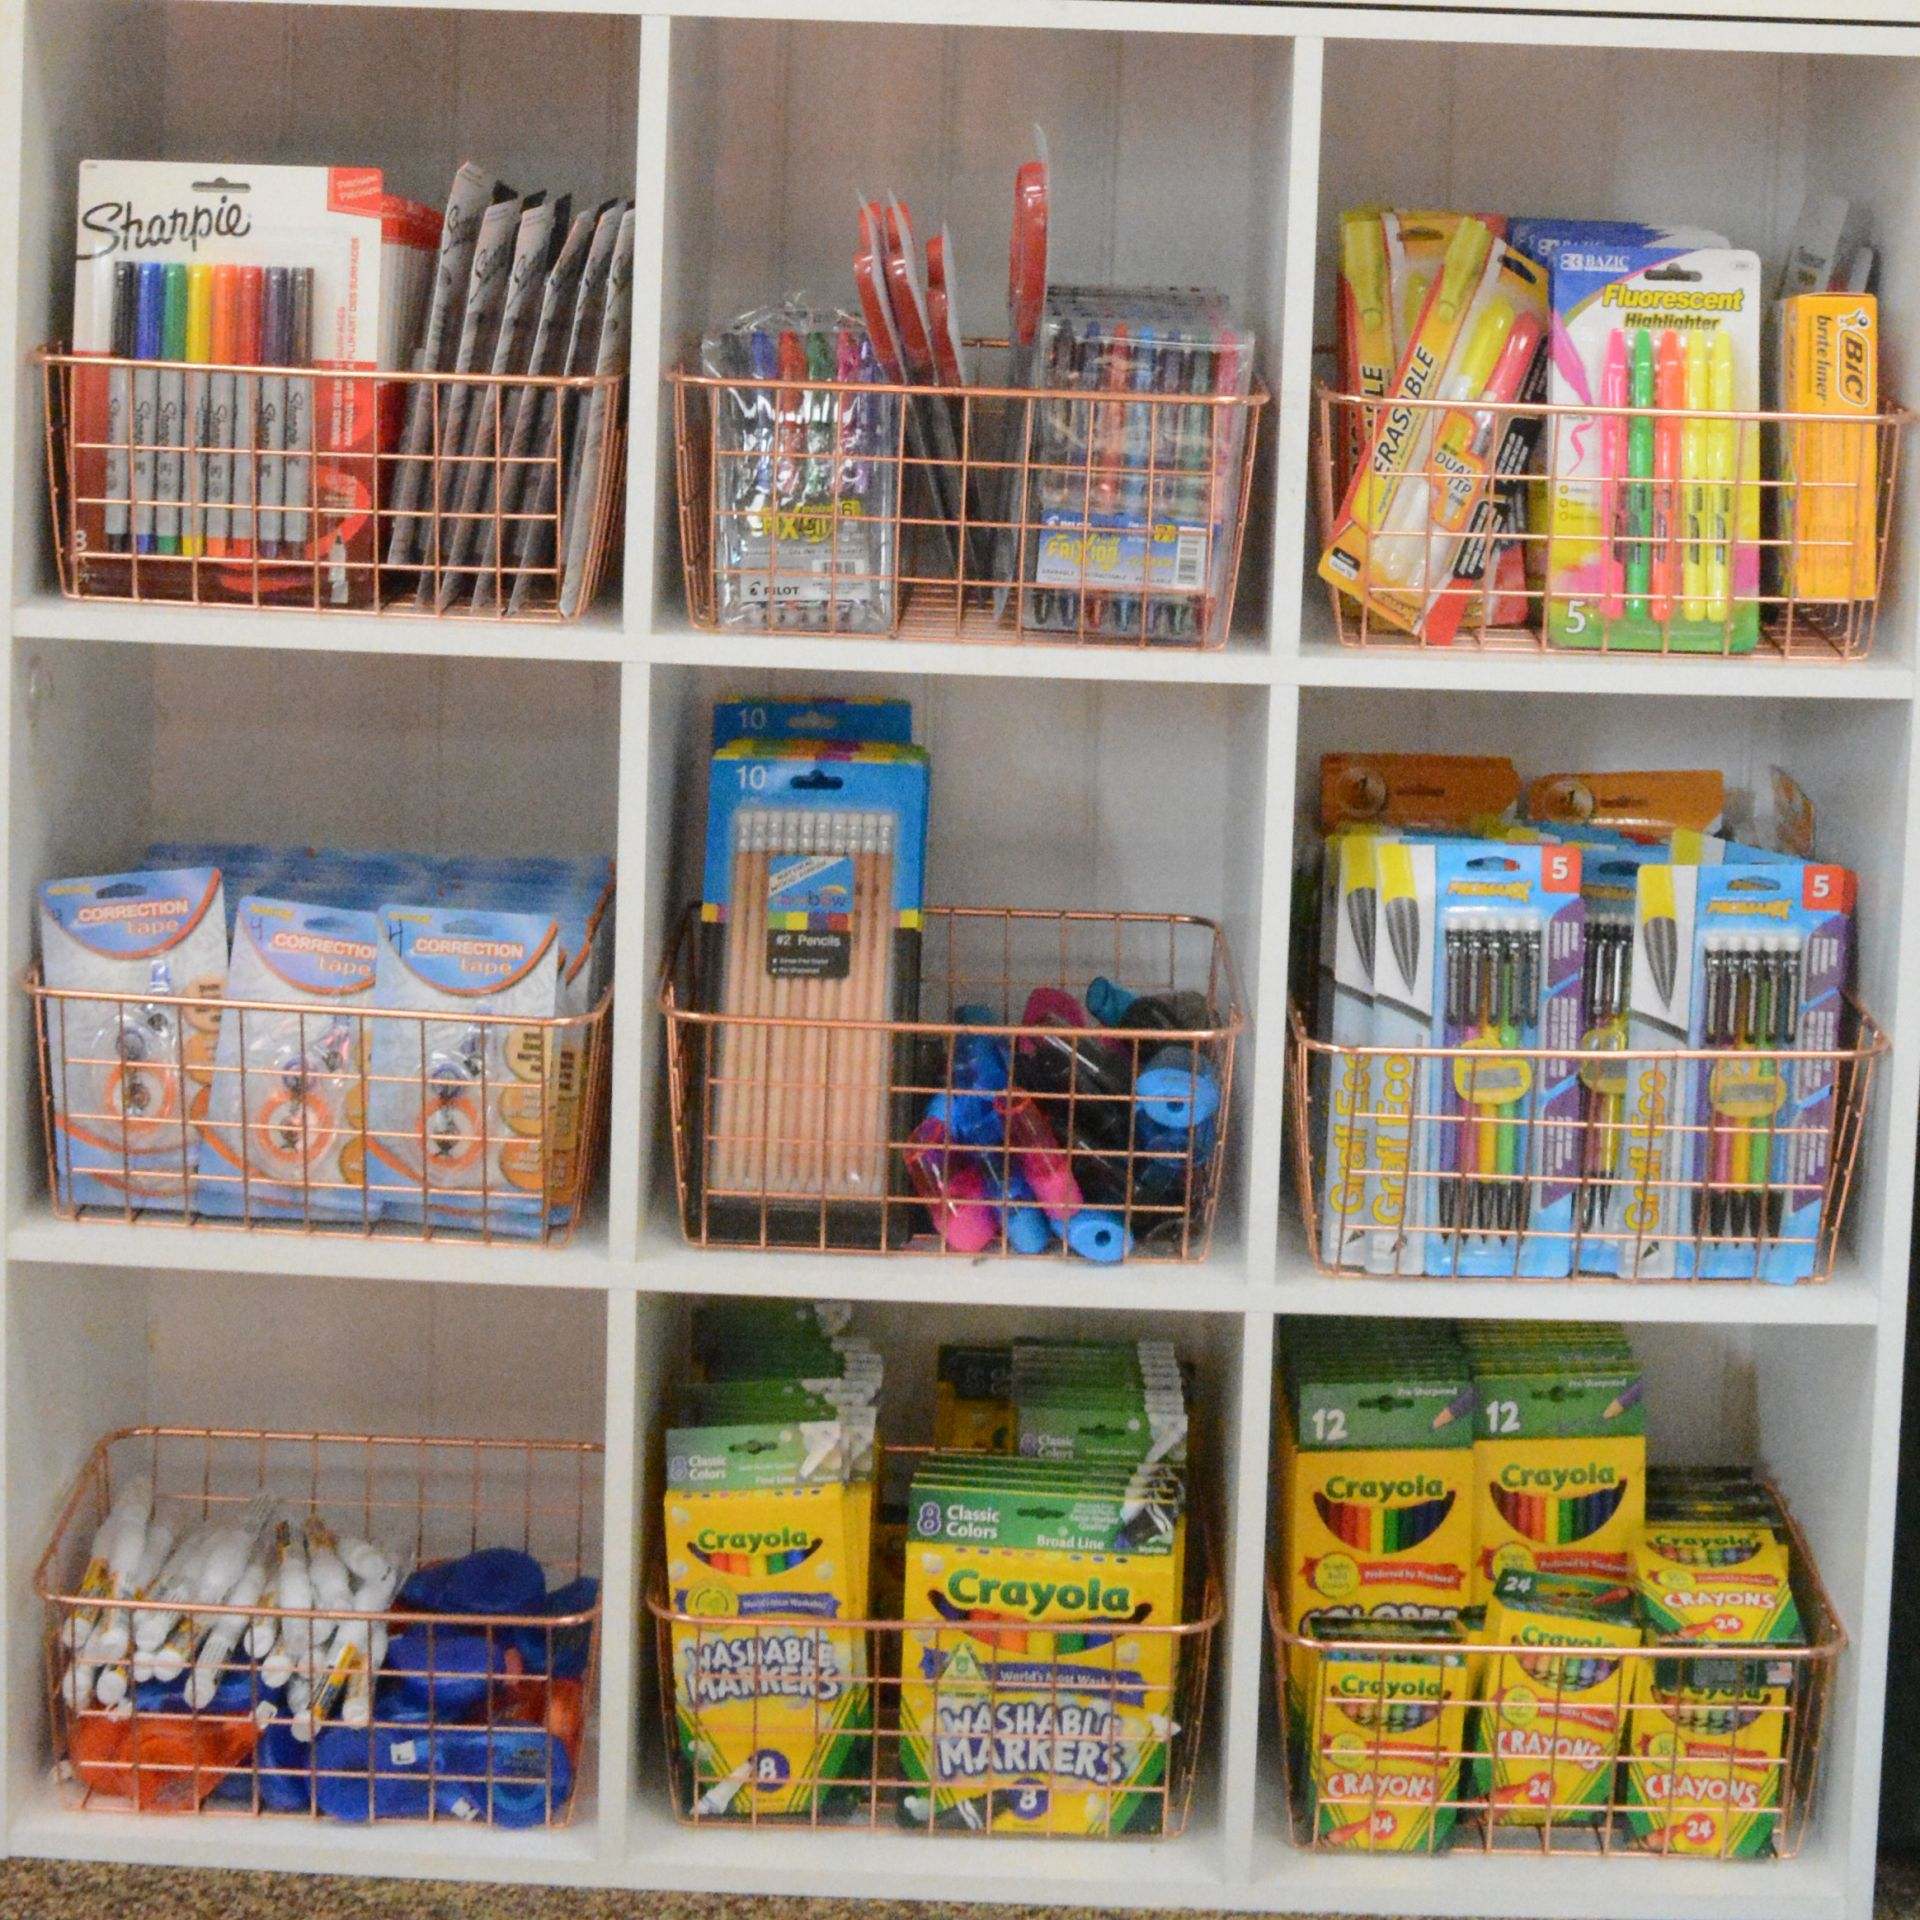 Grier Store stocks the supplies students need for school.